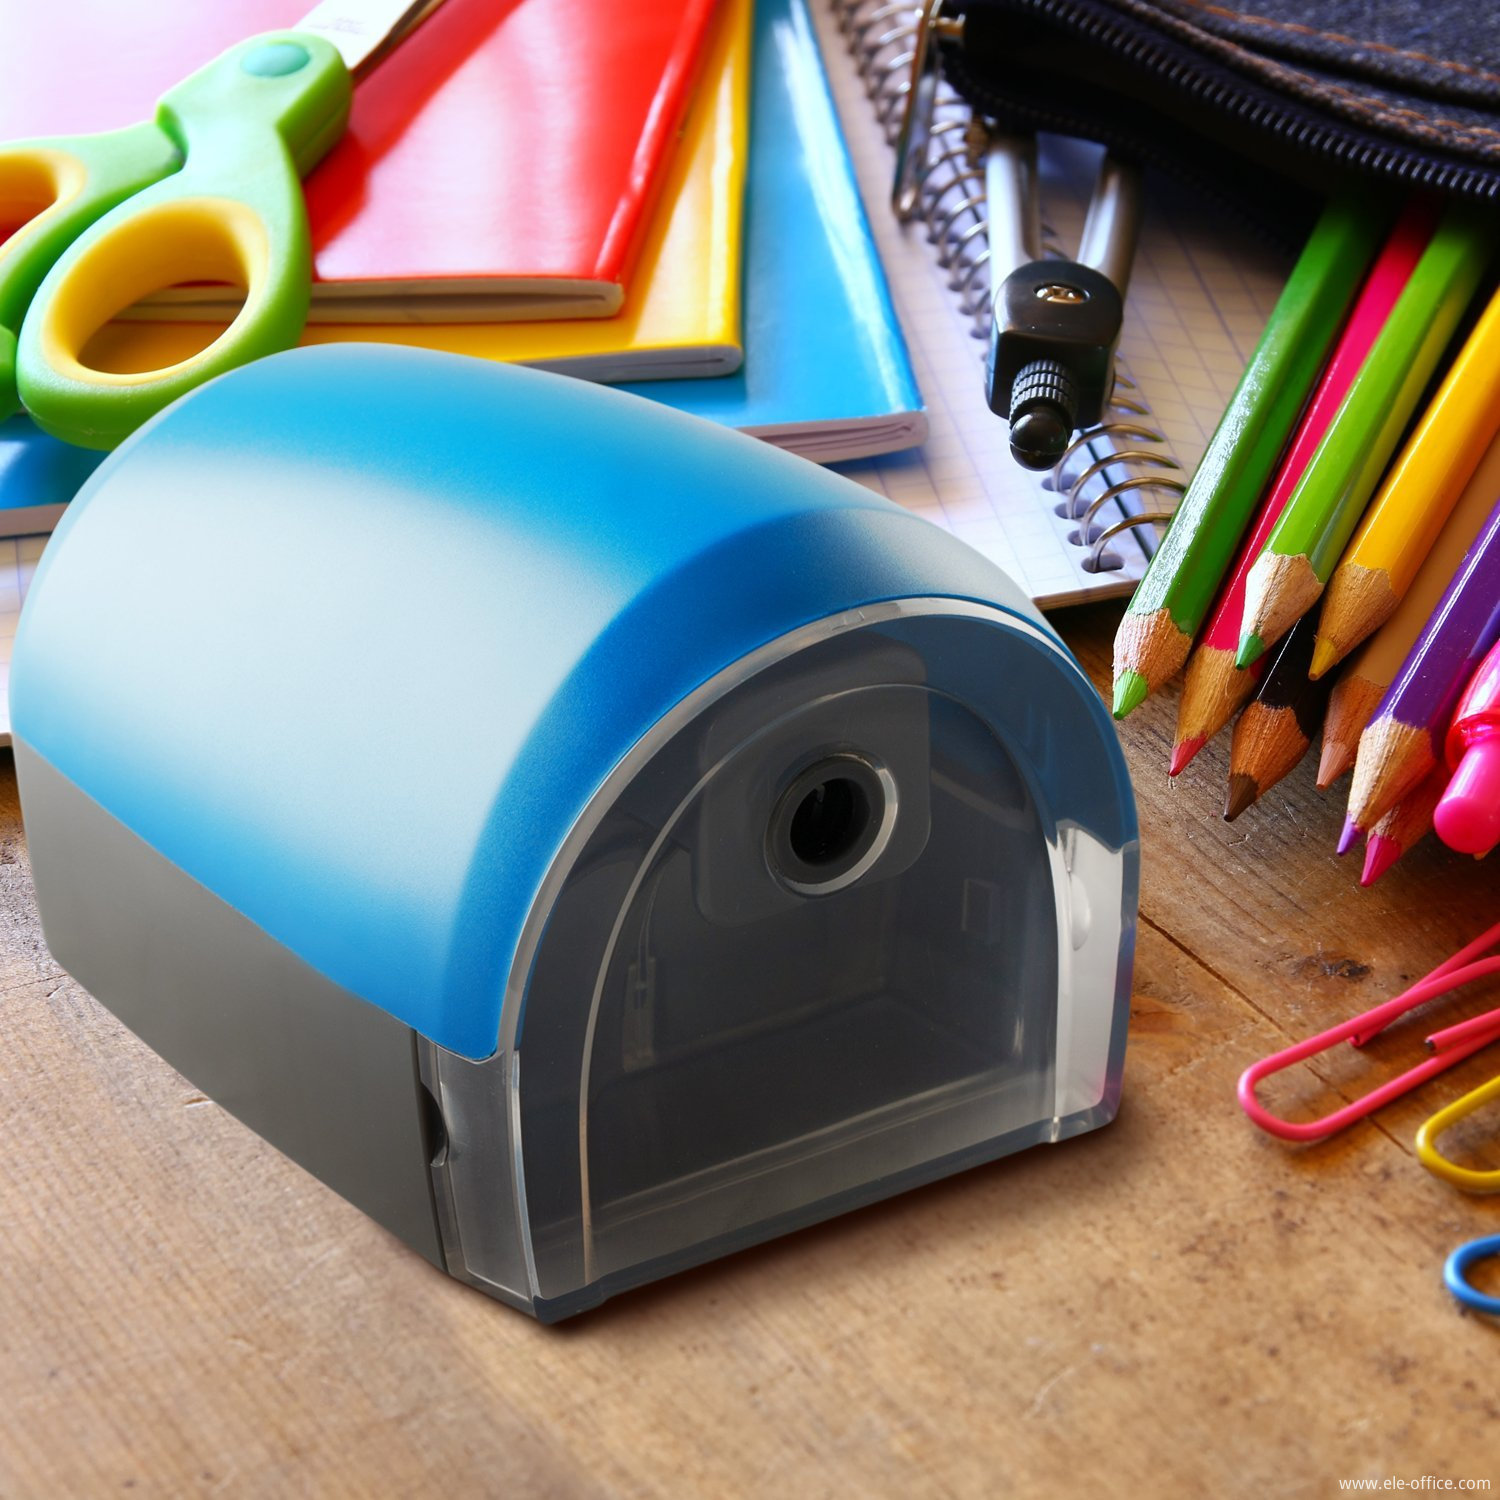 RS-4441 5 PENCIL SHARPENER